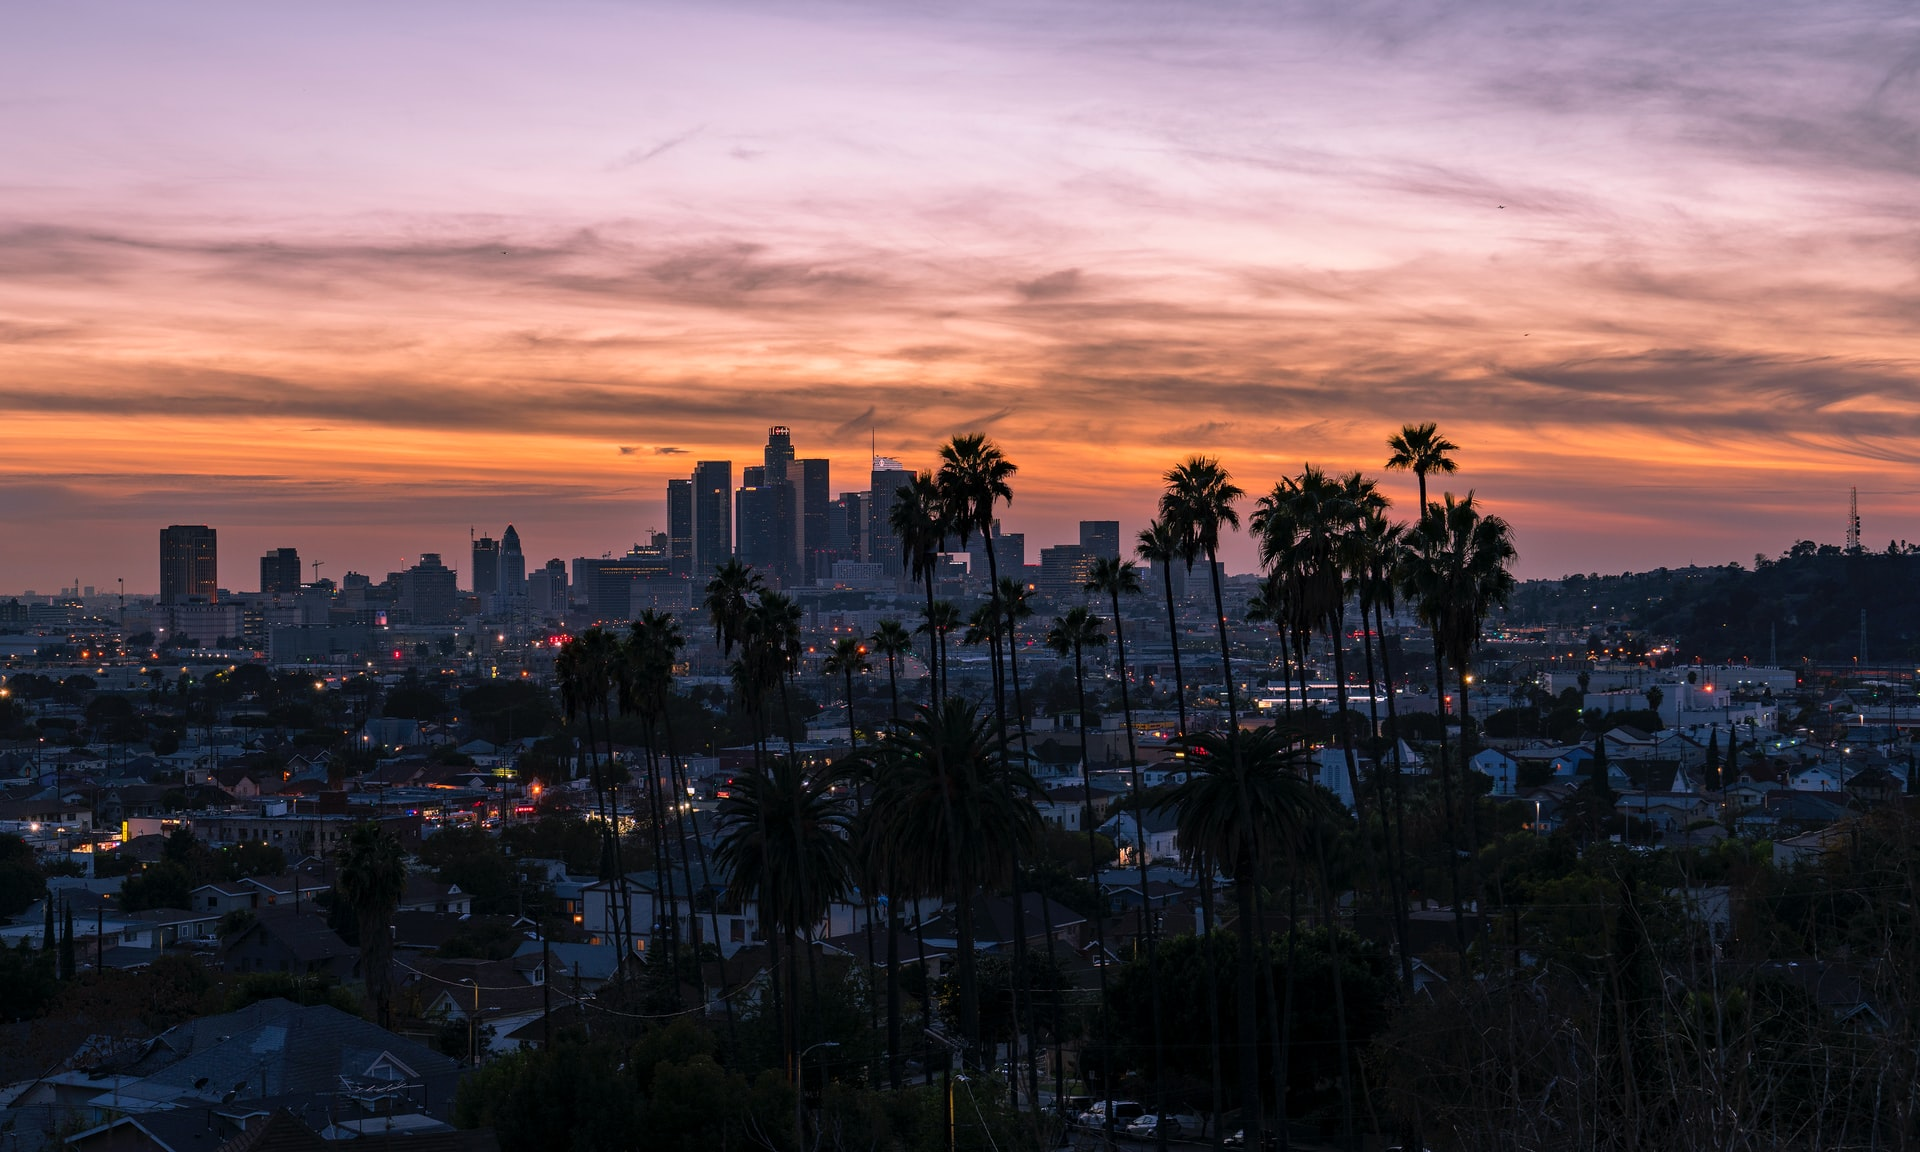 magical sunset view of LA